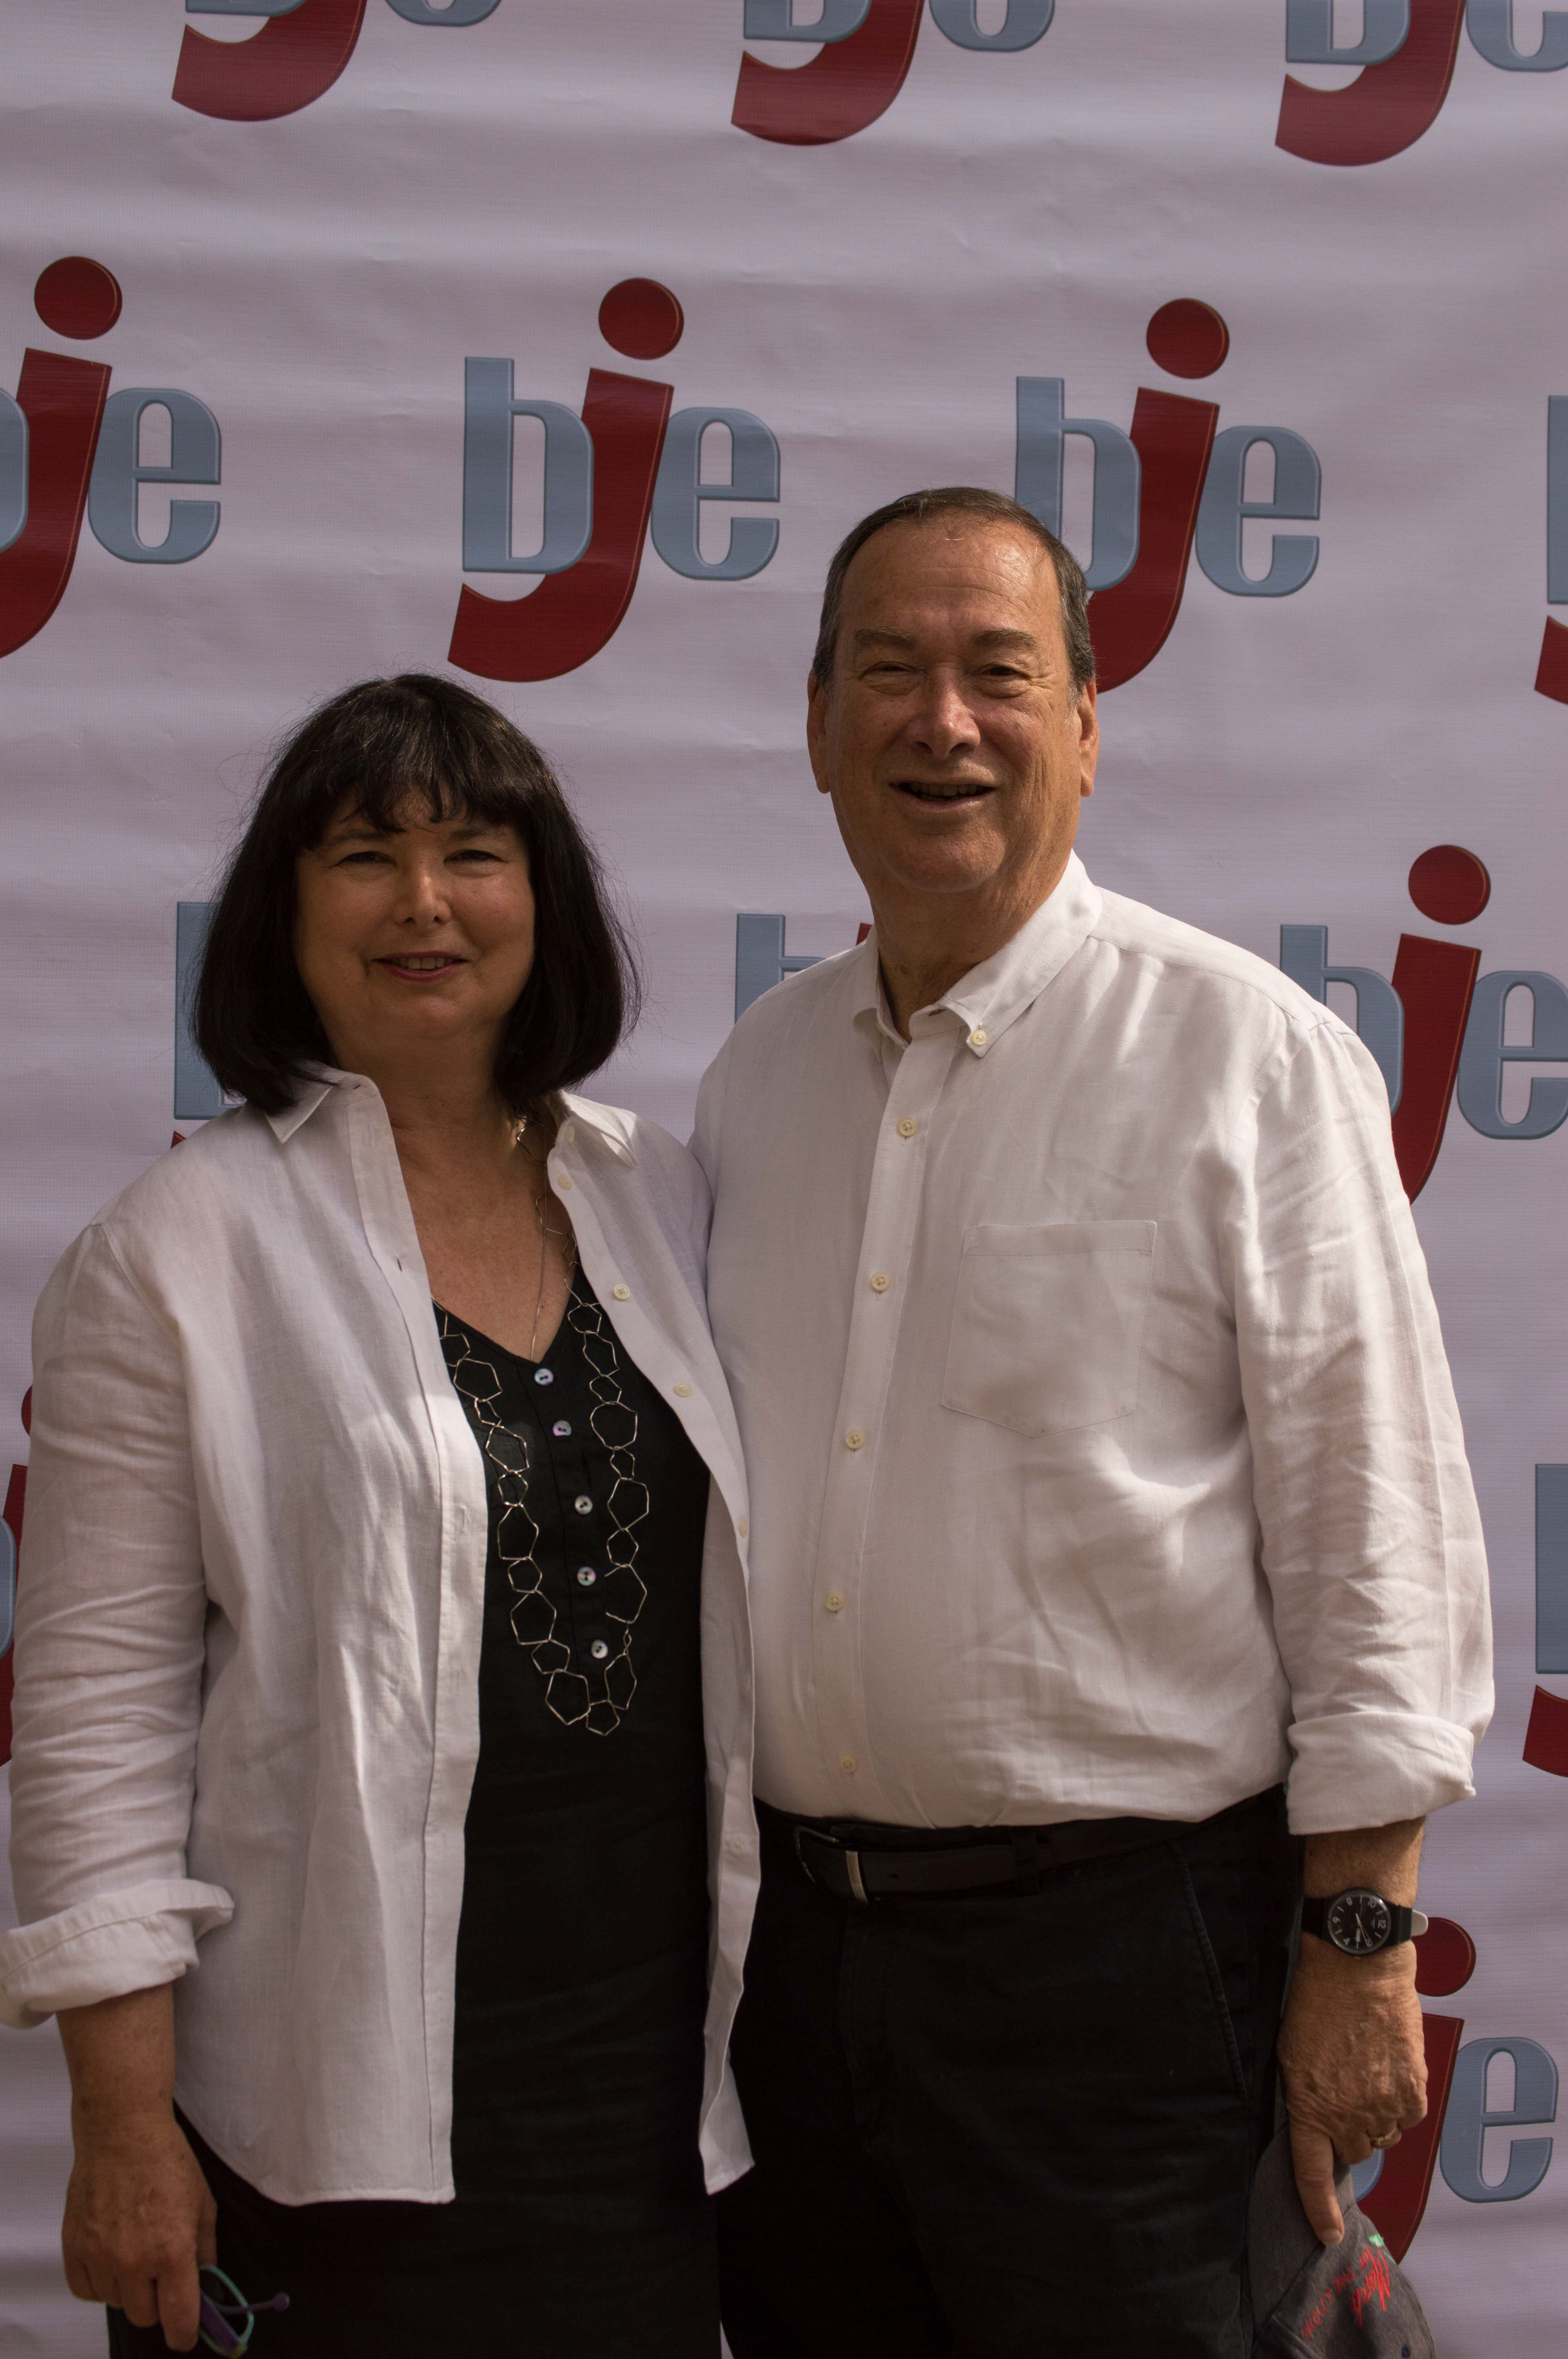 Donor Society Chair Linda Goldenberg Mayman and Robert Mayman